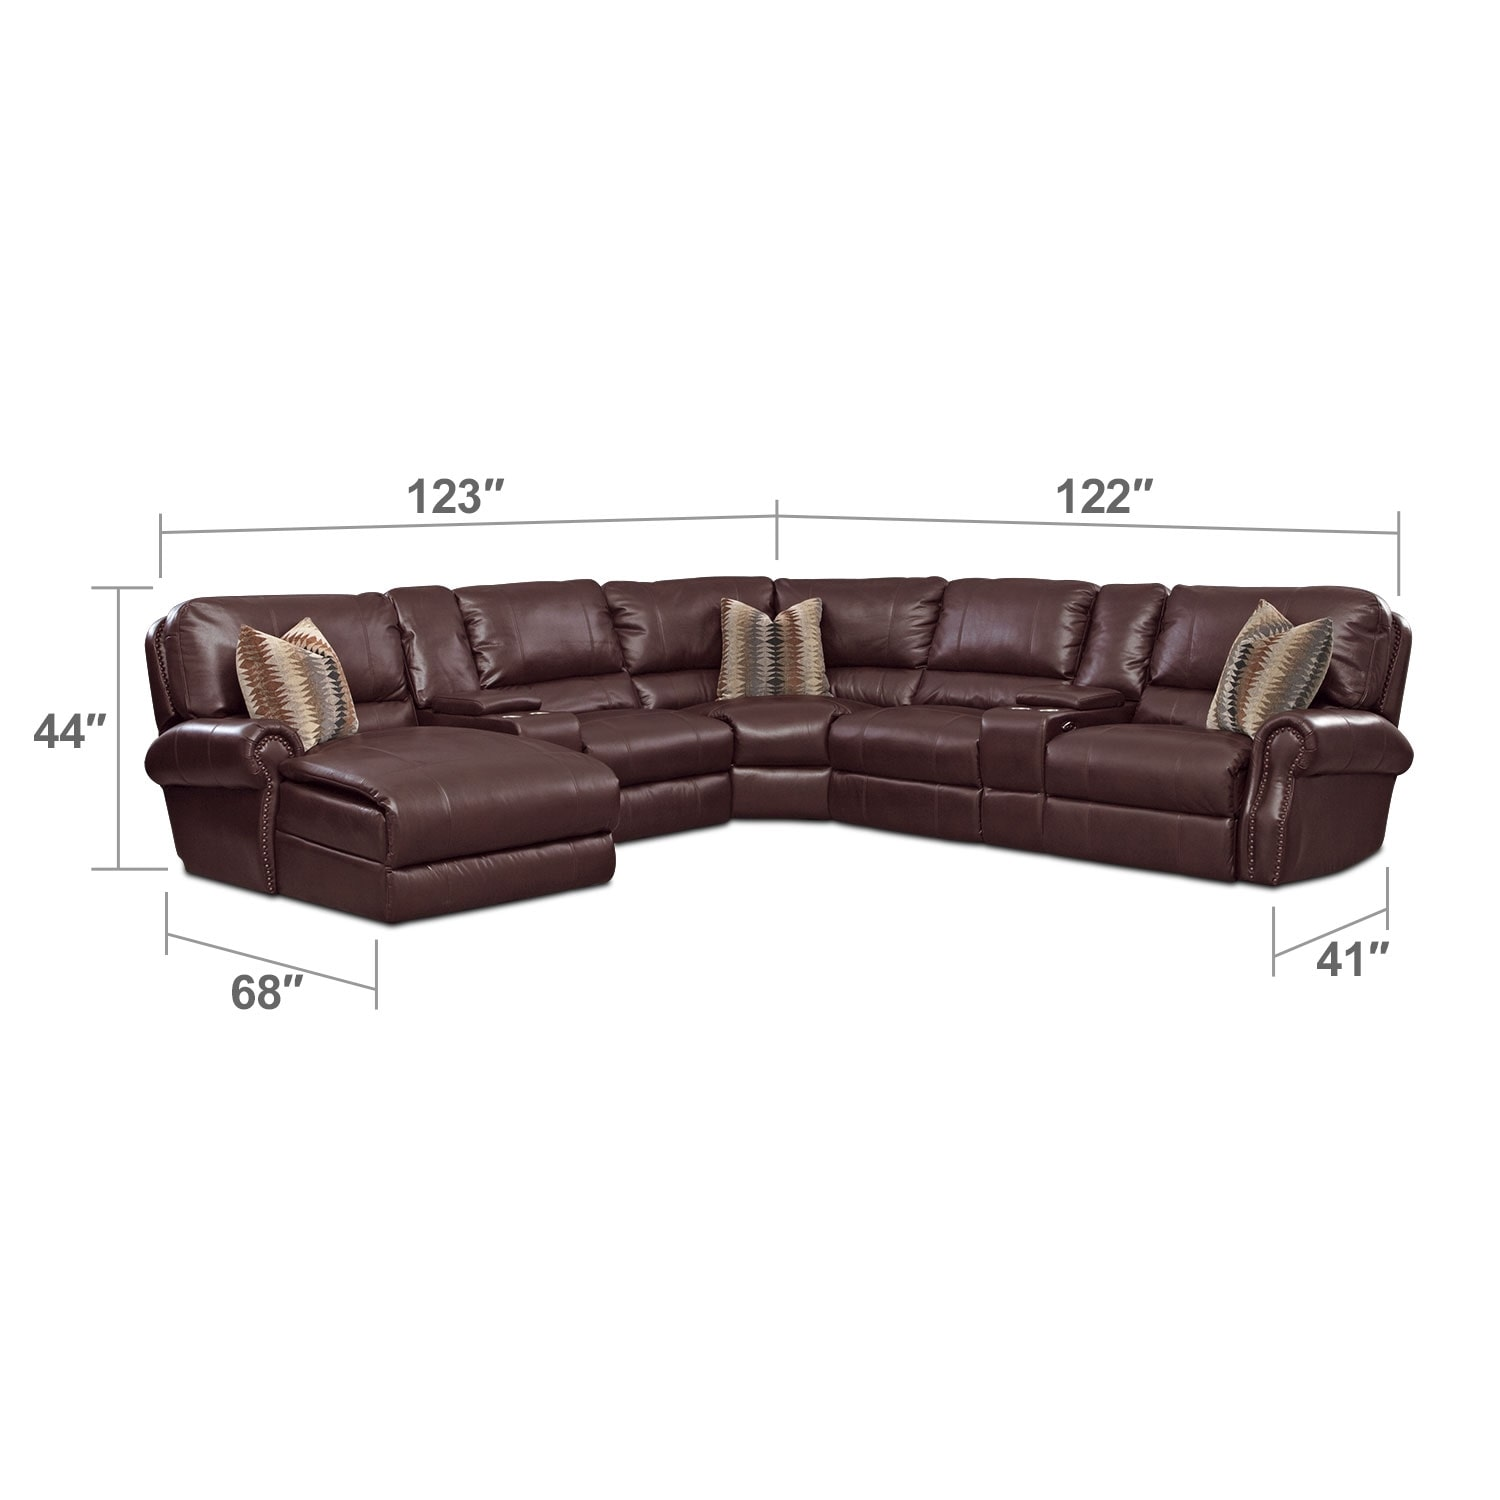 Living Room Furniture - Princeton 5 Pc. Power Reclining Sectional (Reverse)